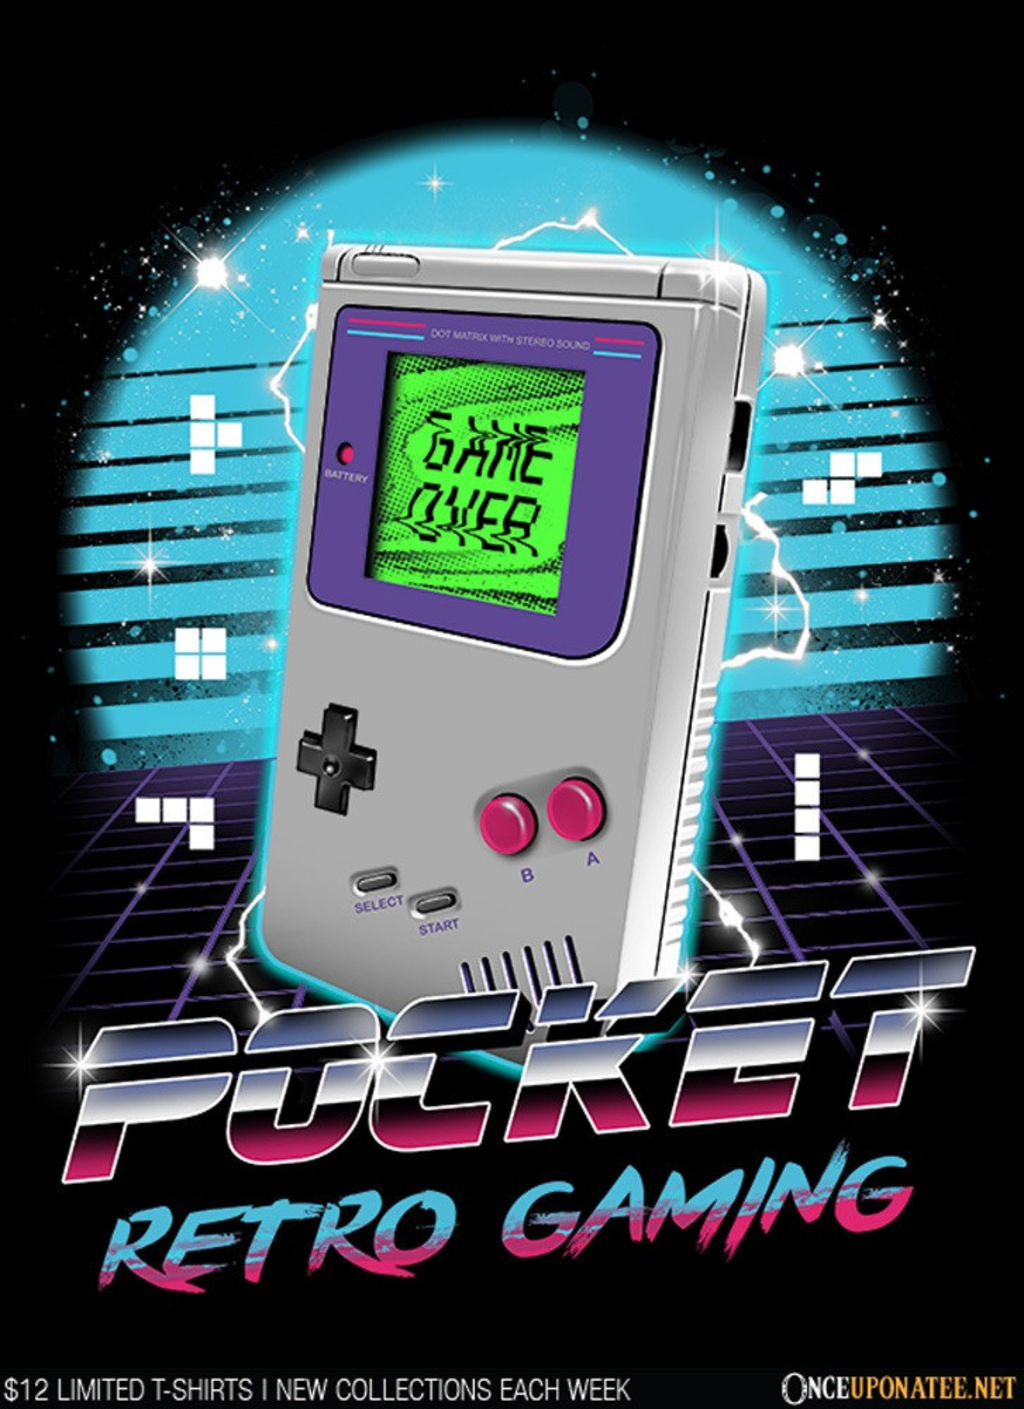 Once Upon a Tee: Pocket Retro Gaming